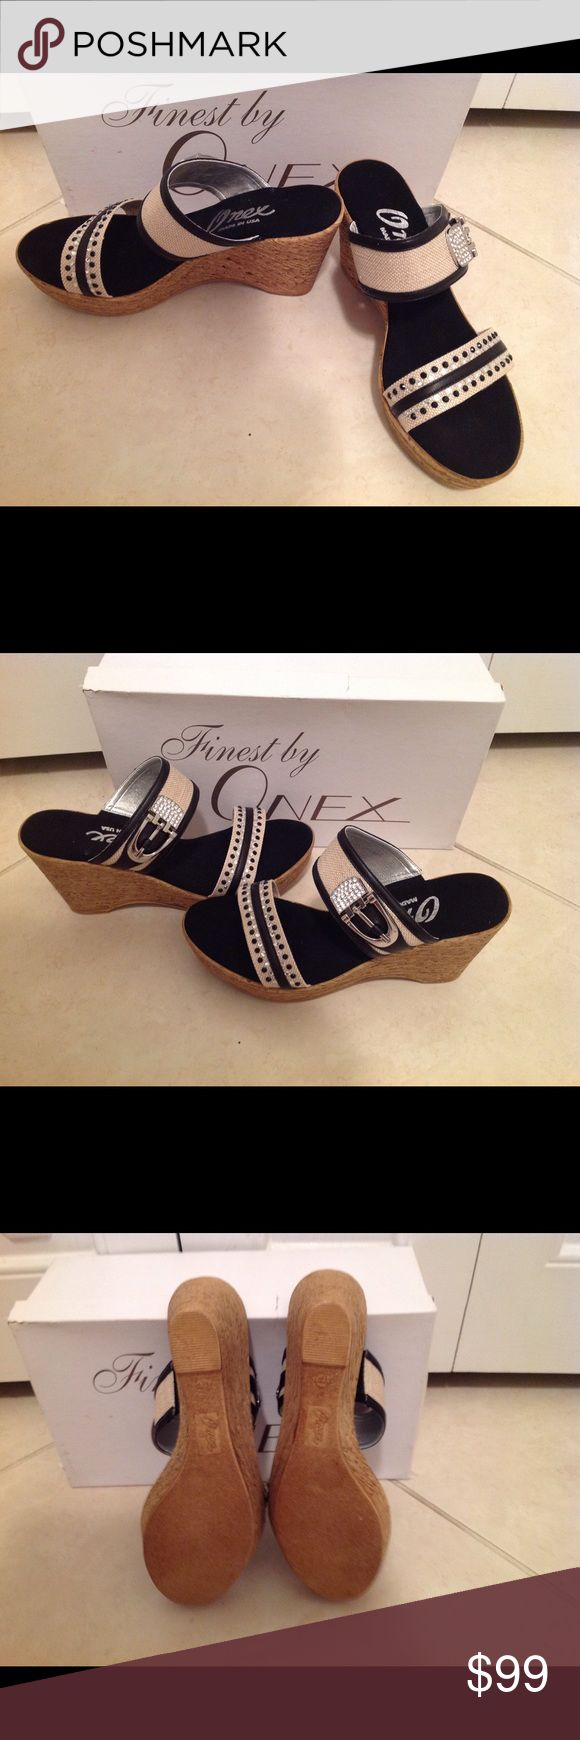 New, Onex Bettina Wedge Sandals Brand new, still in box. Flawless condition Onex Shoes Wedges